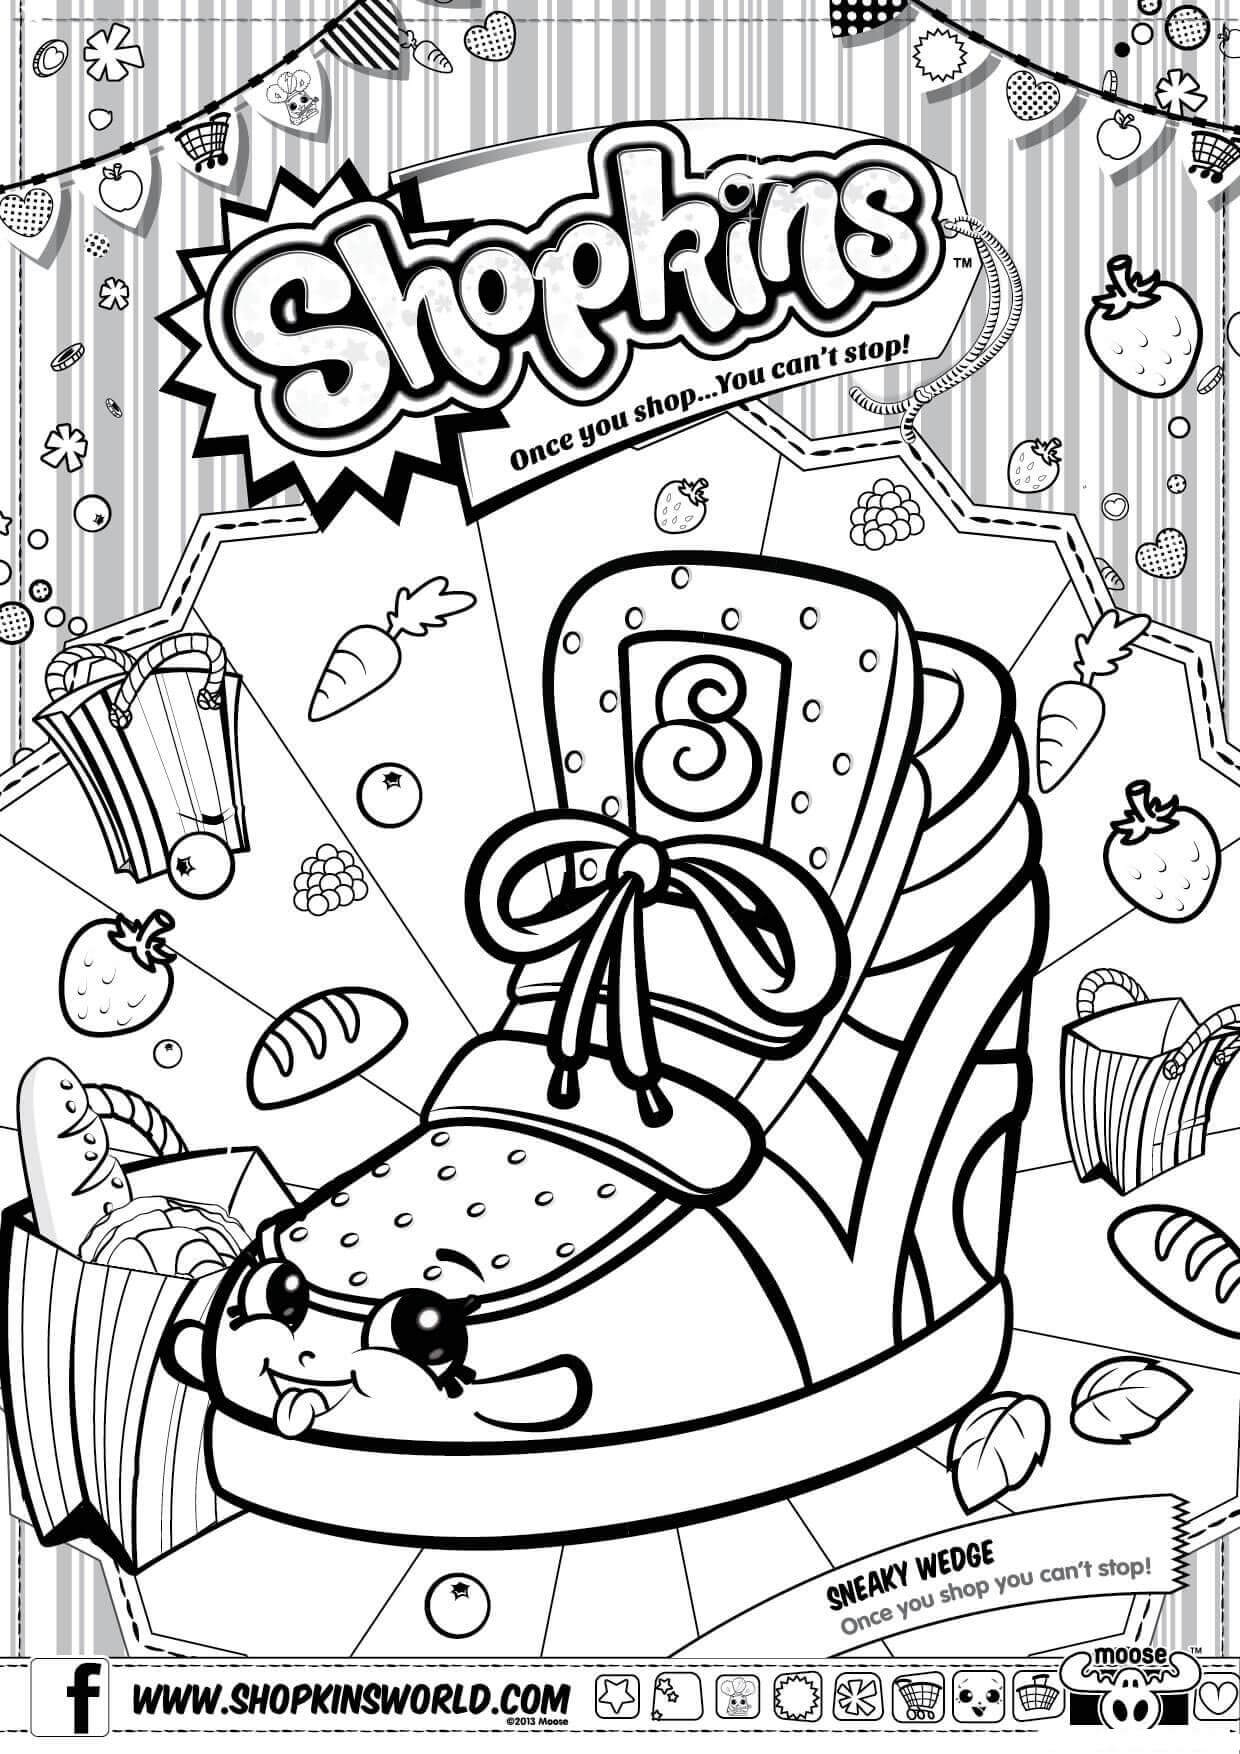 1240x1754 Shopkins Coloring Pages Download